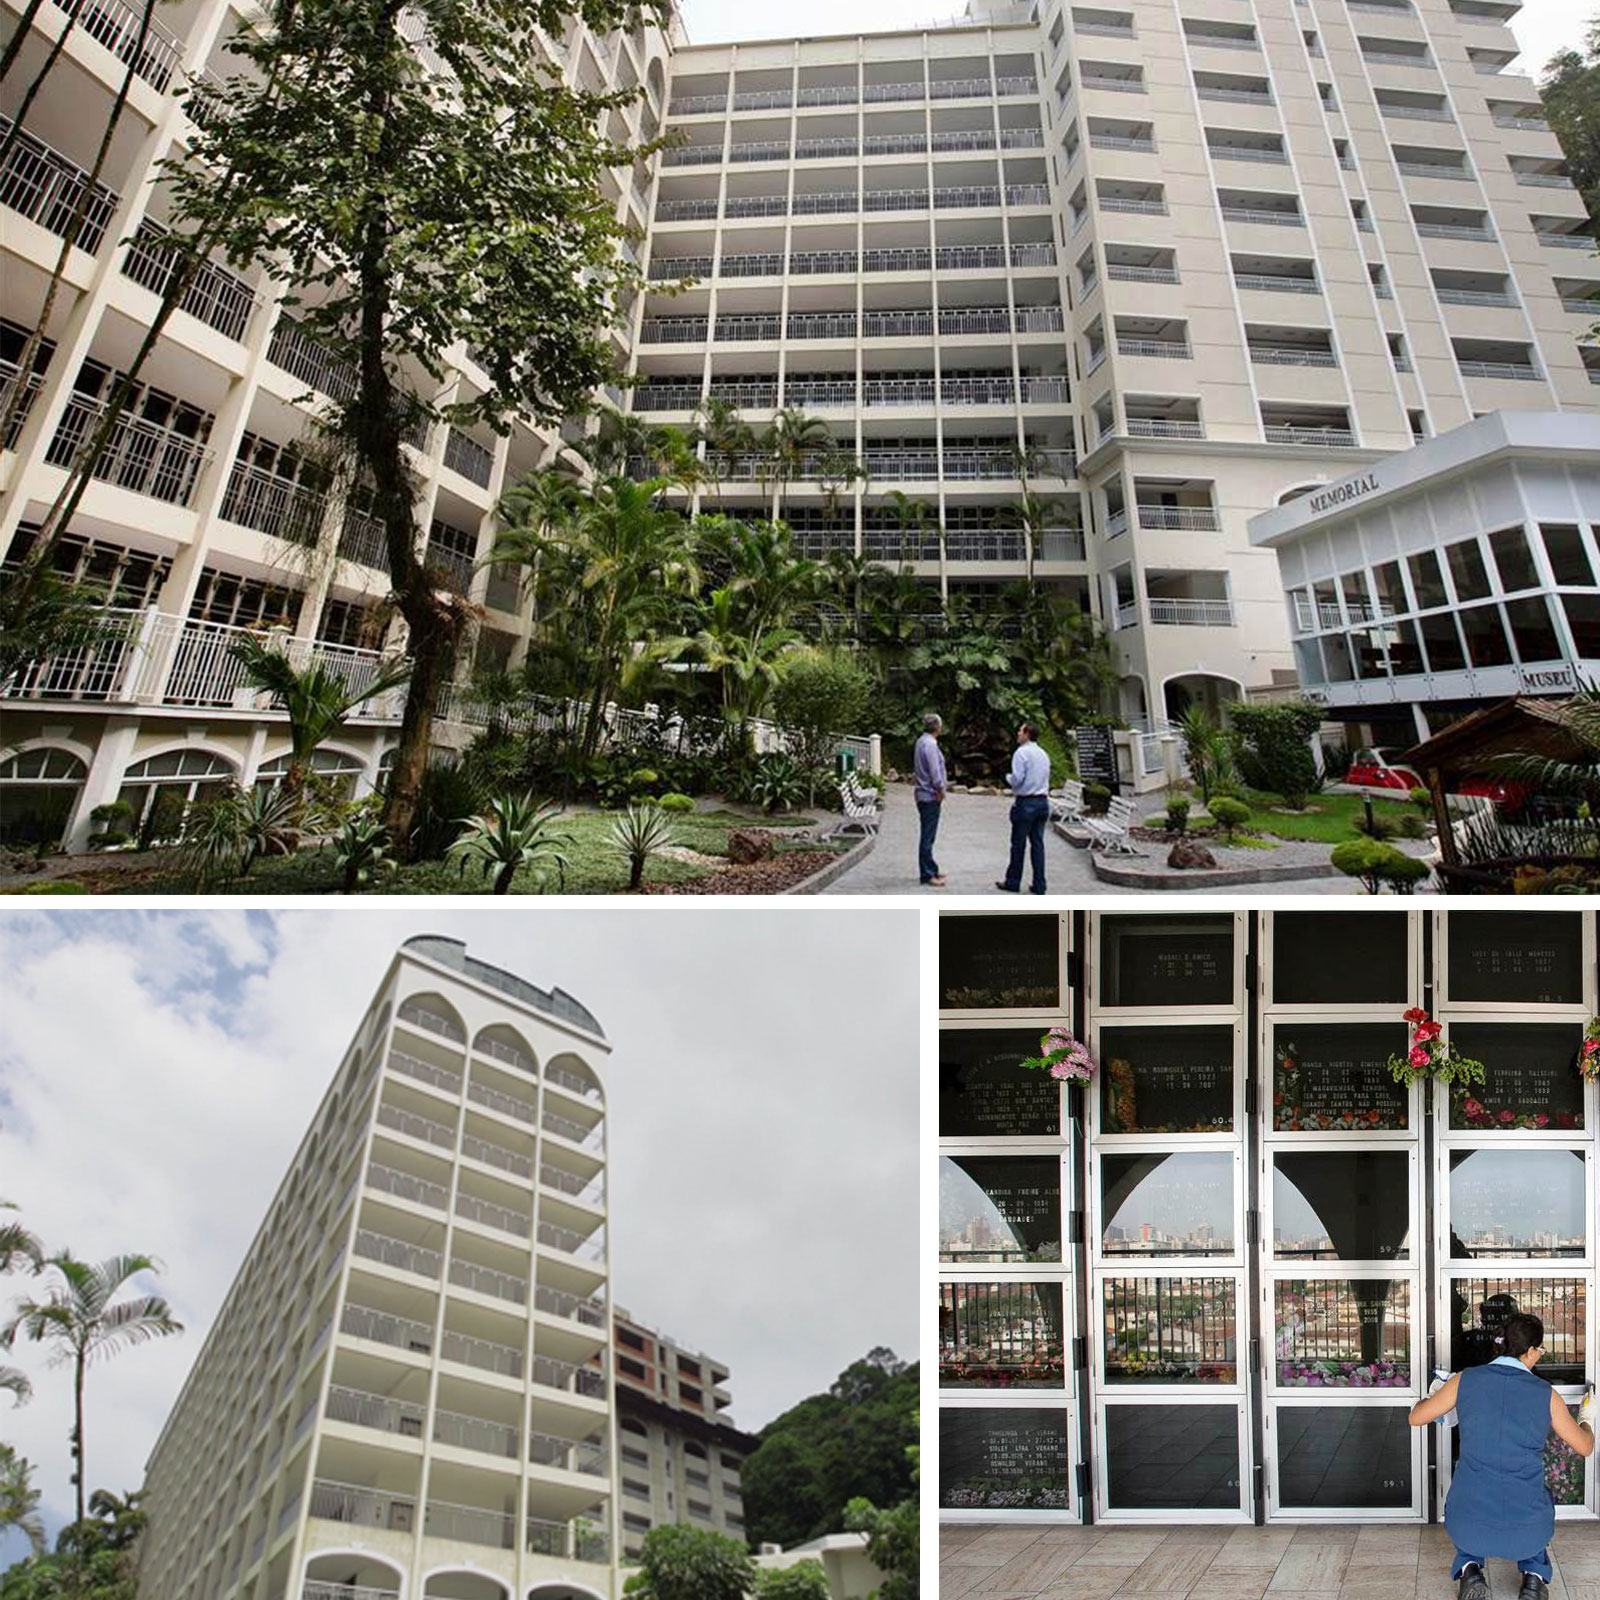 The Memorial Necrópole Ecumênica in Santos has the capacity to hold 14,000 burial spaces spread over 14 floors with plans to create another 25,00 niches underway.